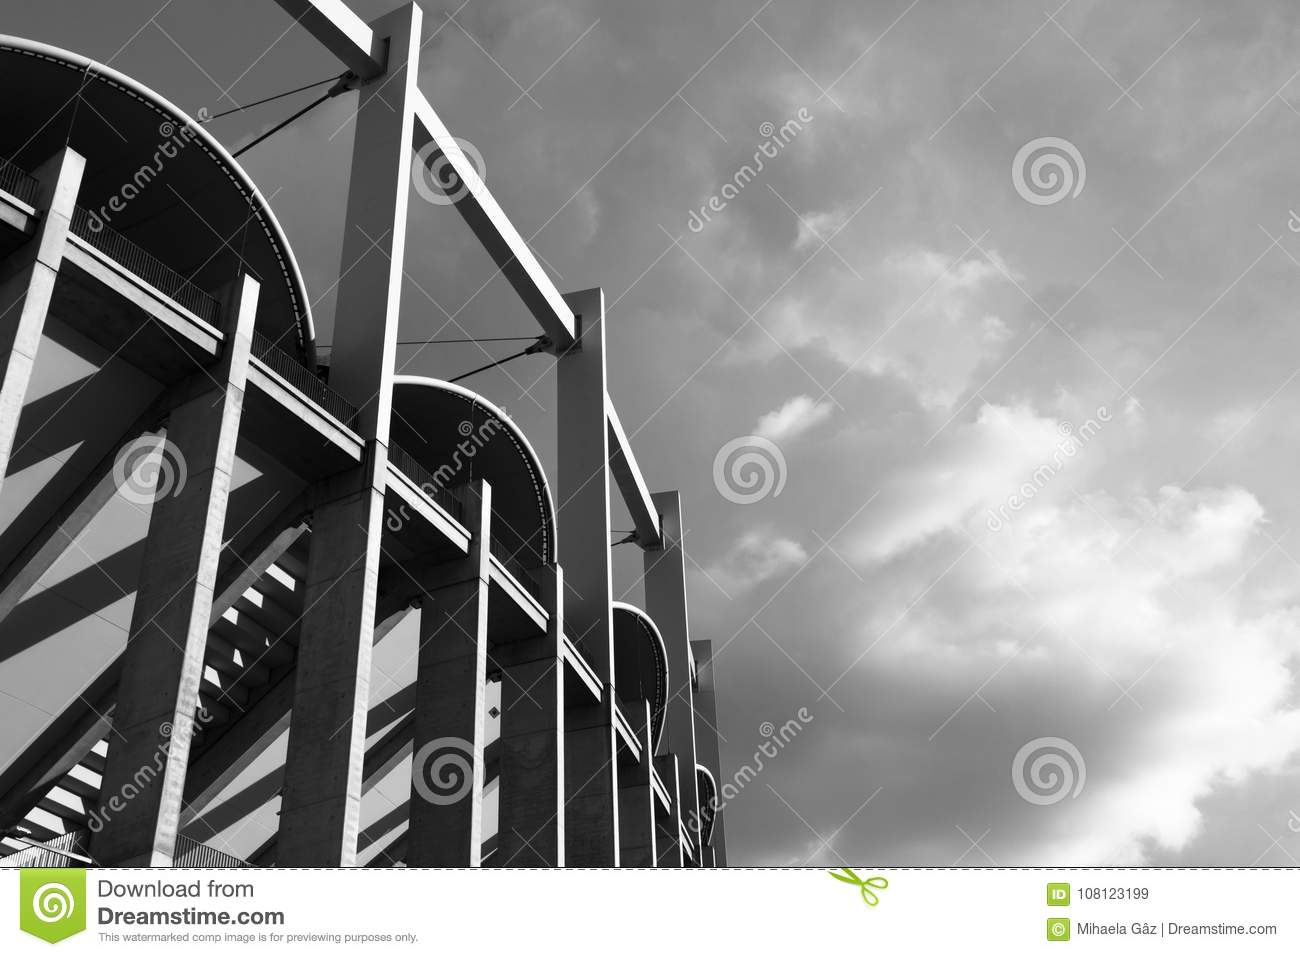 High architectonic vertical lines of a contemporaneous building black&white